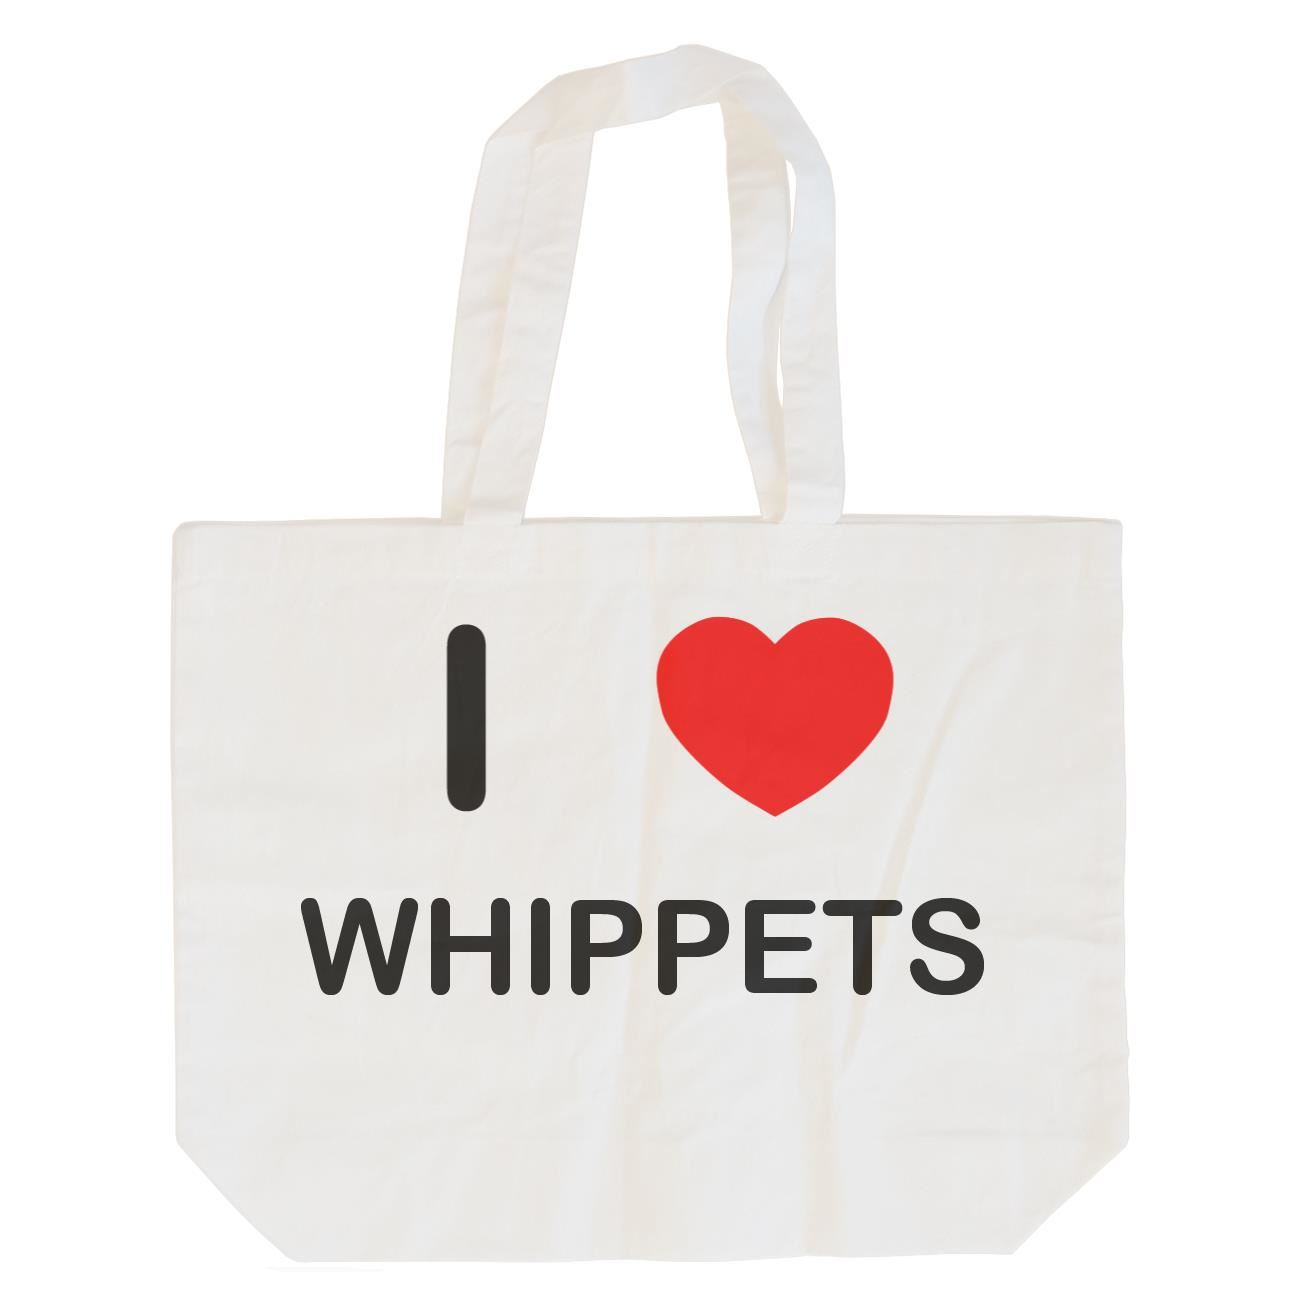 I Love Whippets - Cotton Bag | Size choice Tote, Shopper or Sling